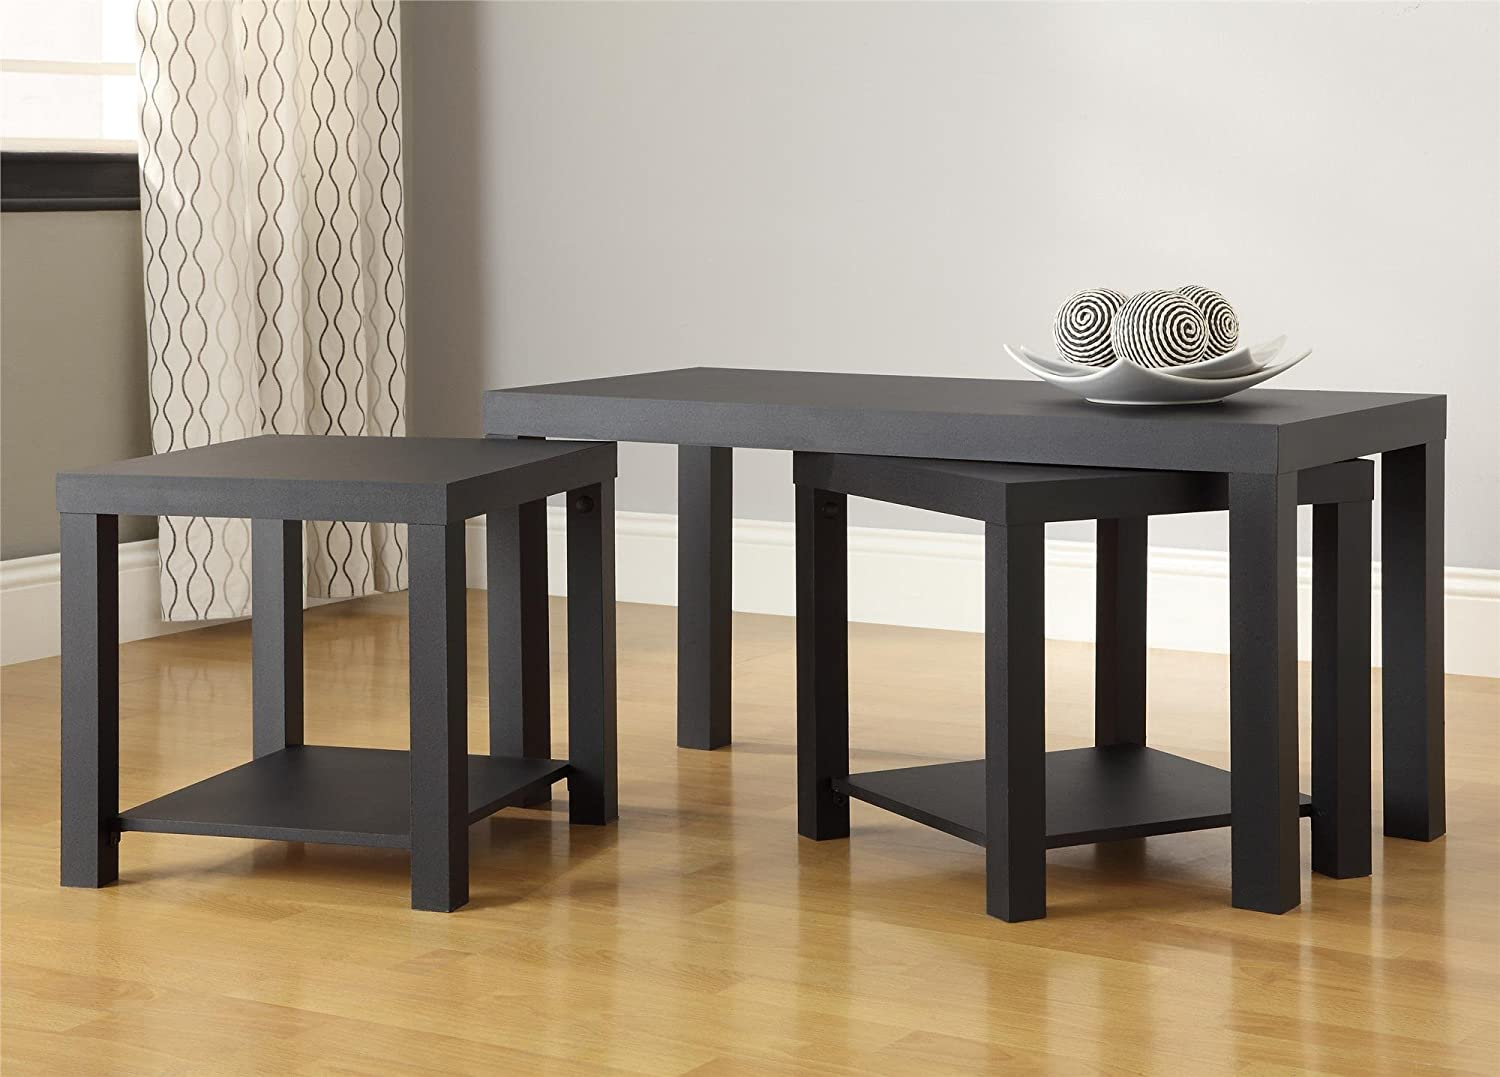 amazoncom ameriwood home holly bay coffee table and end table set black kitchen u0026 dining